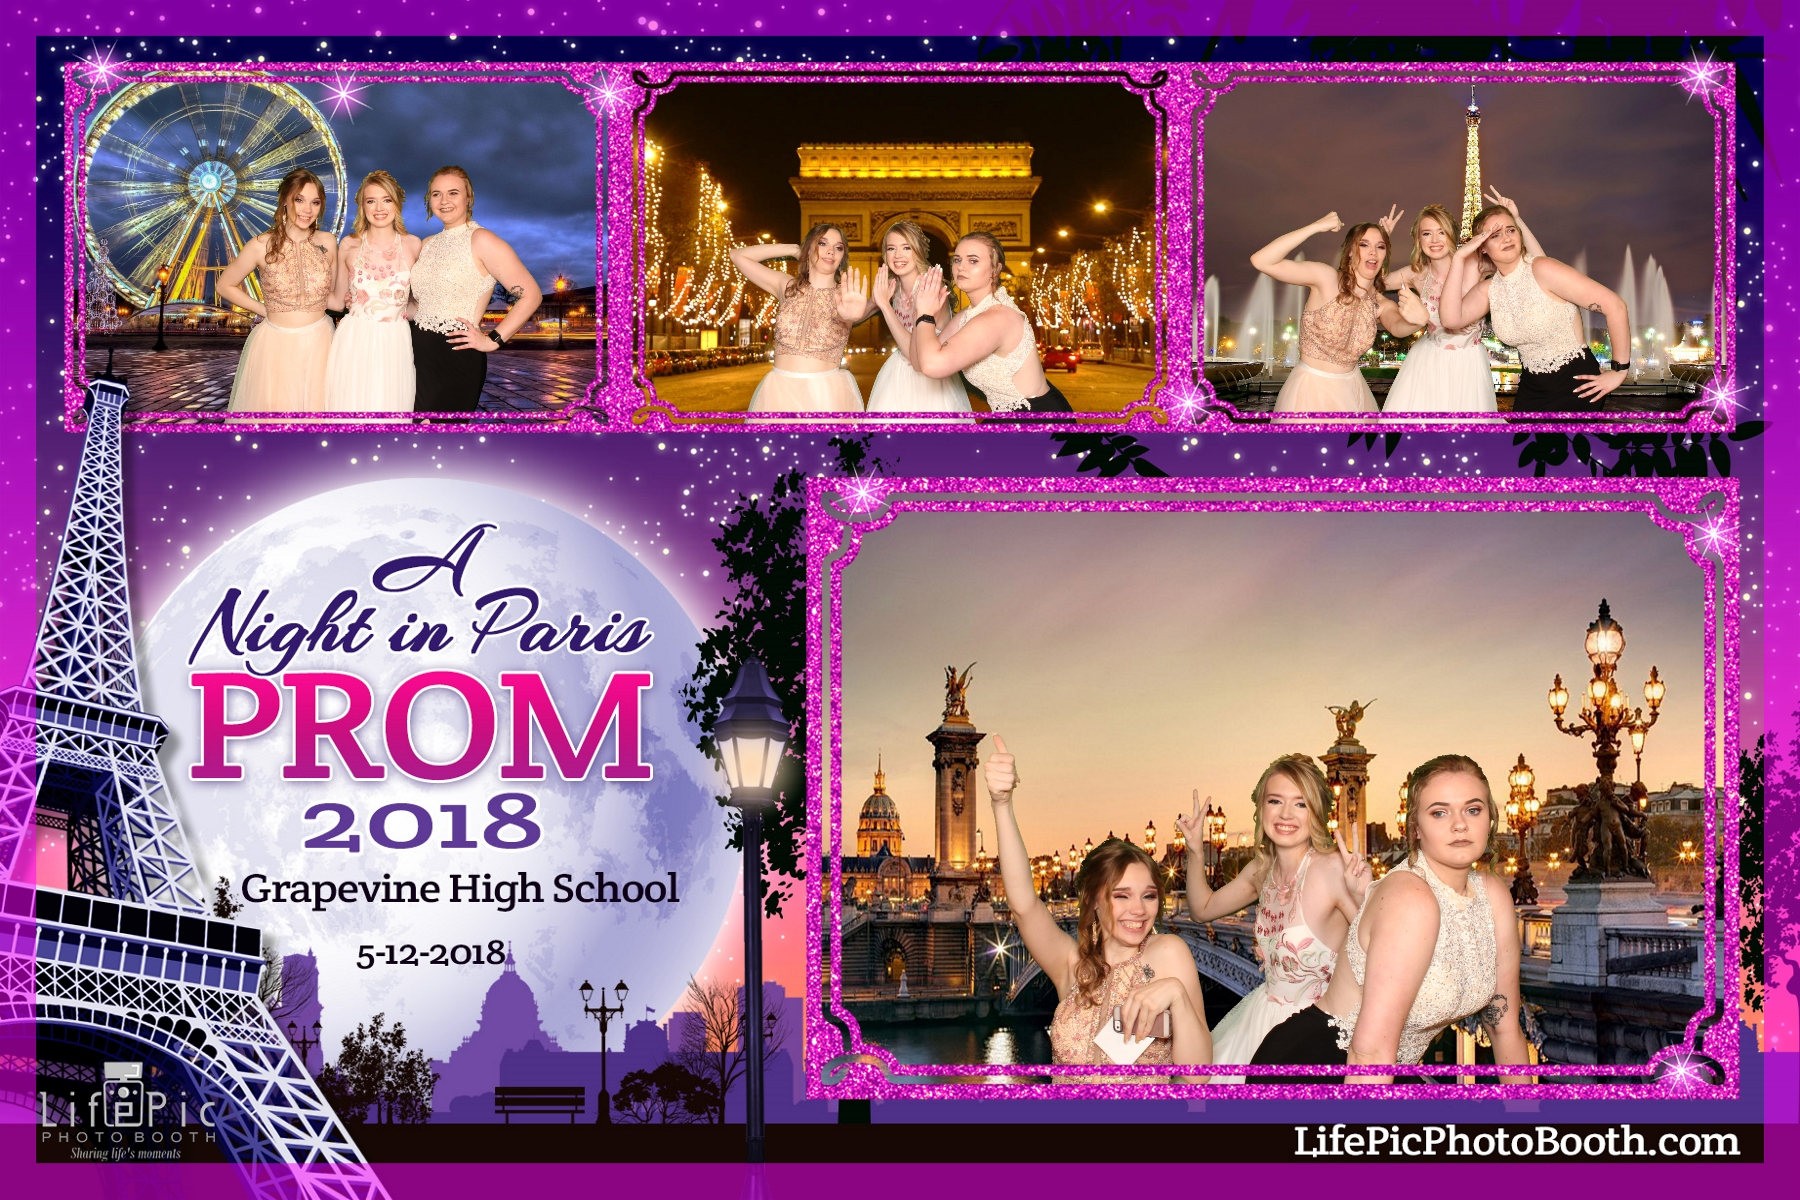 Grapevine High School Prom_2018-05-12_21